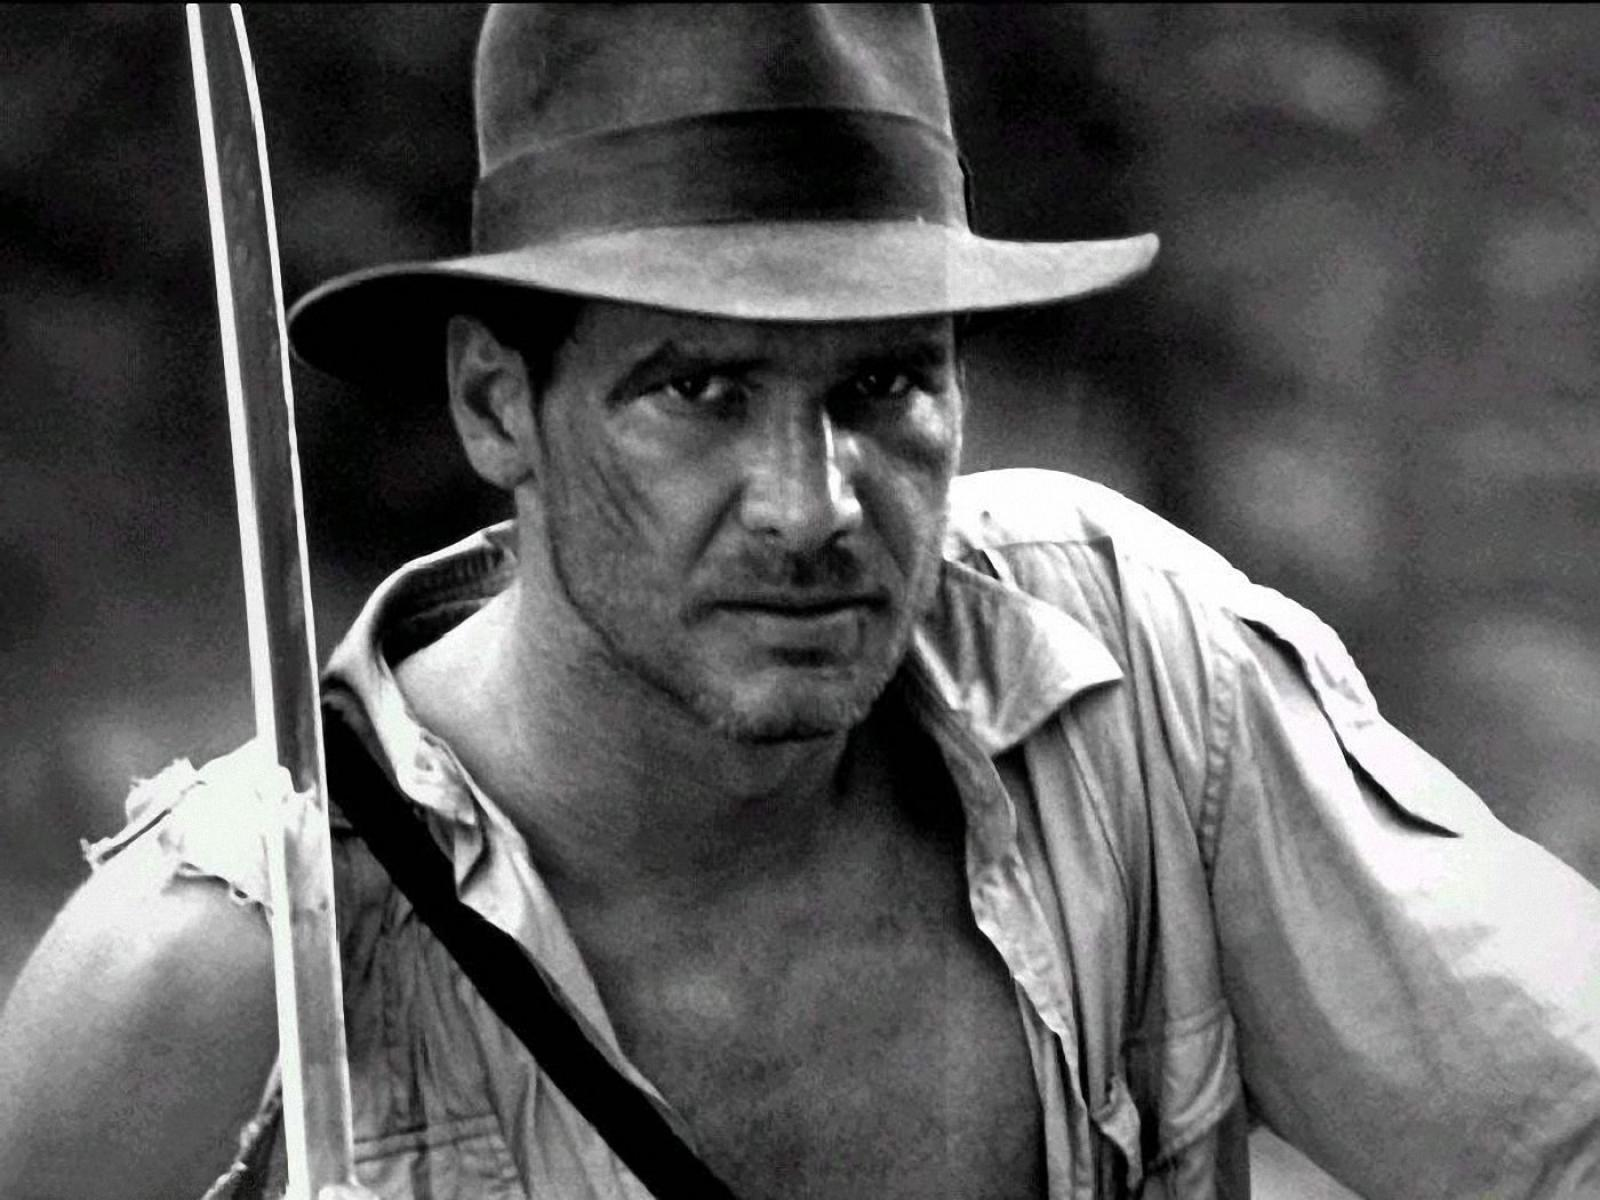 1600x1200 - Harrison Ford Wallpapers 3